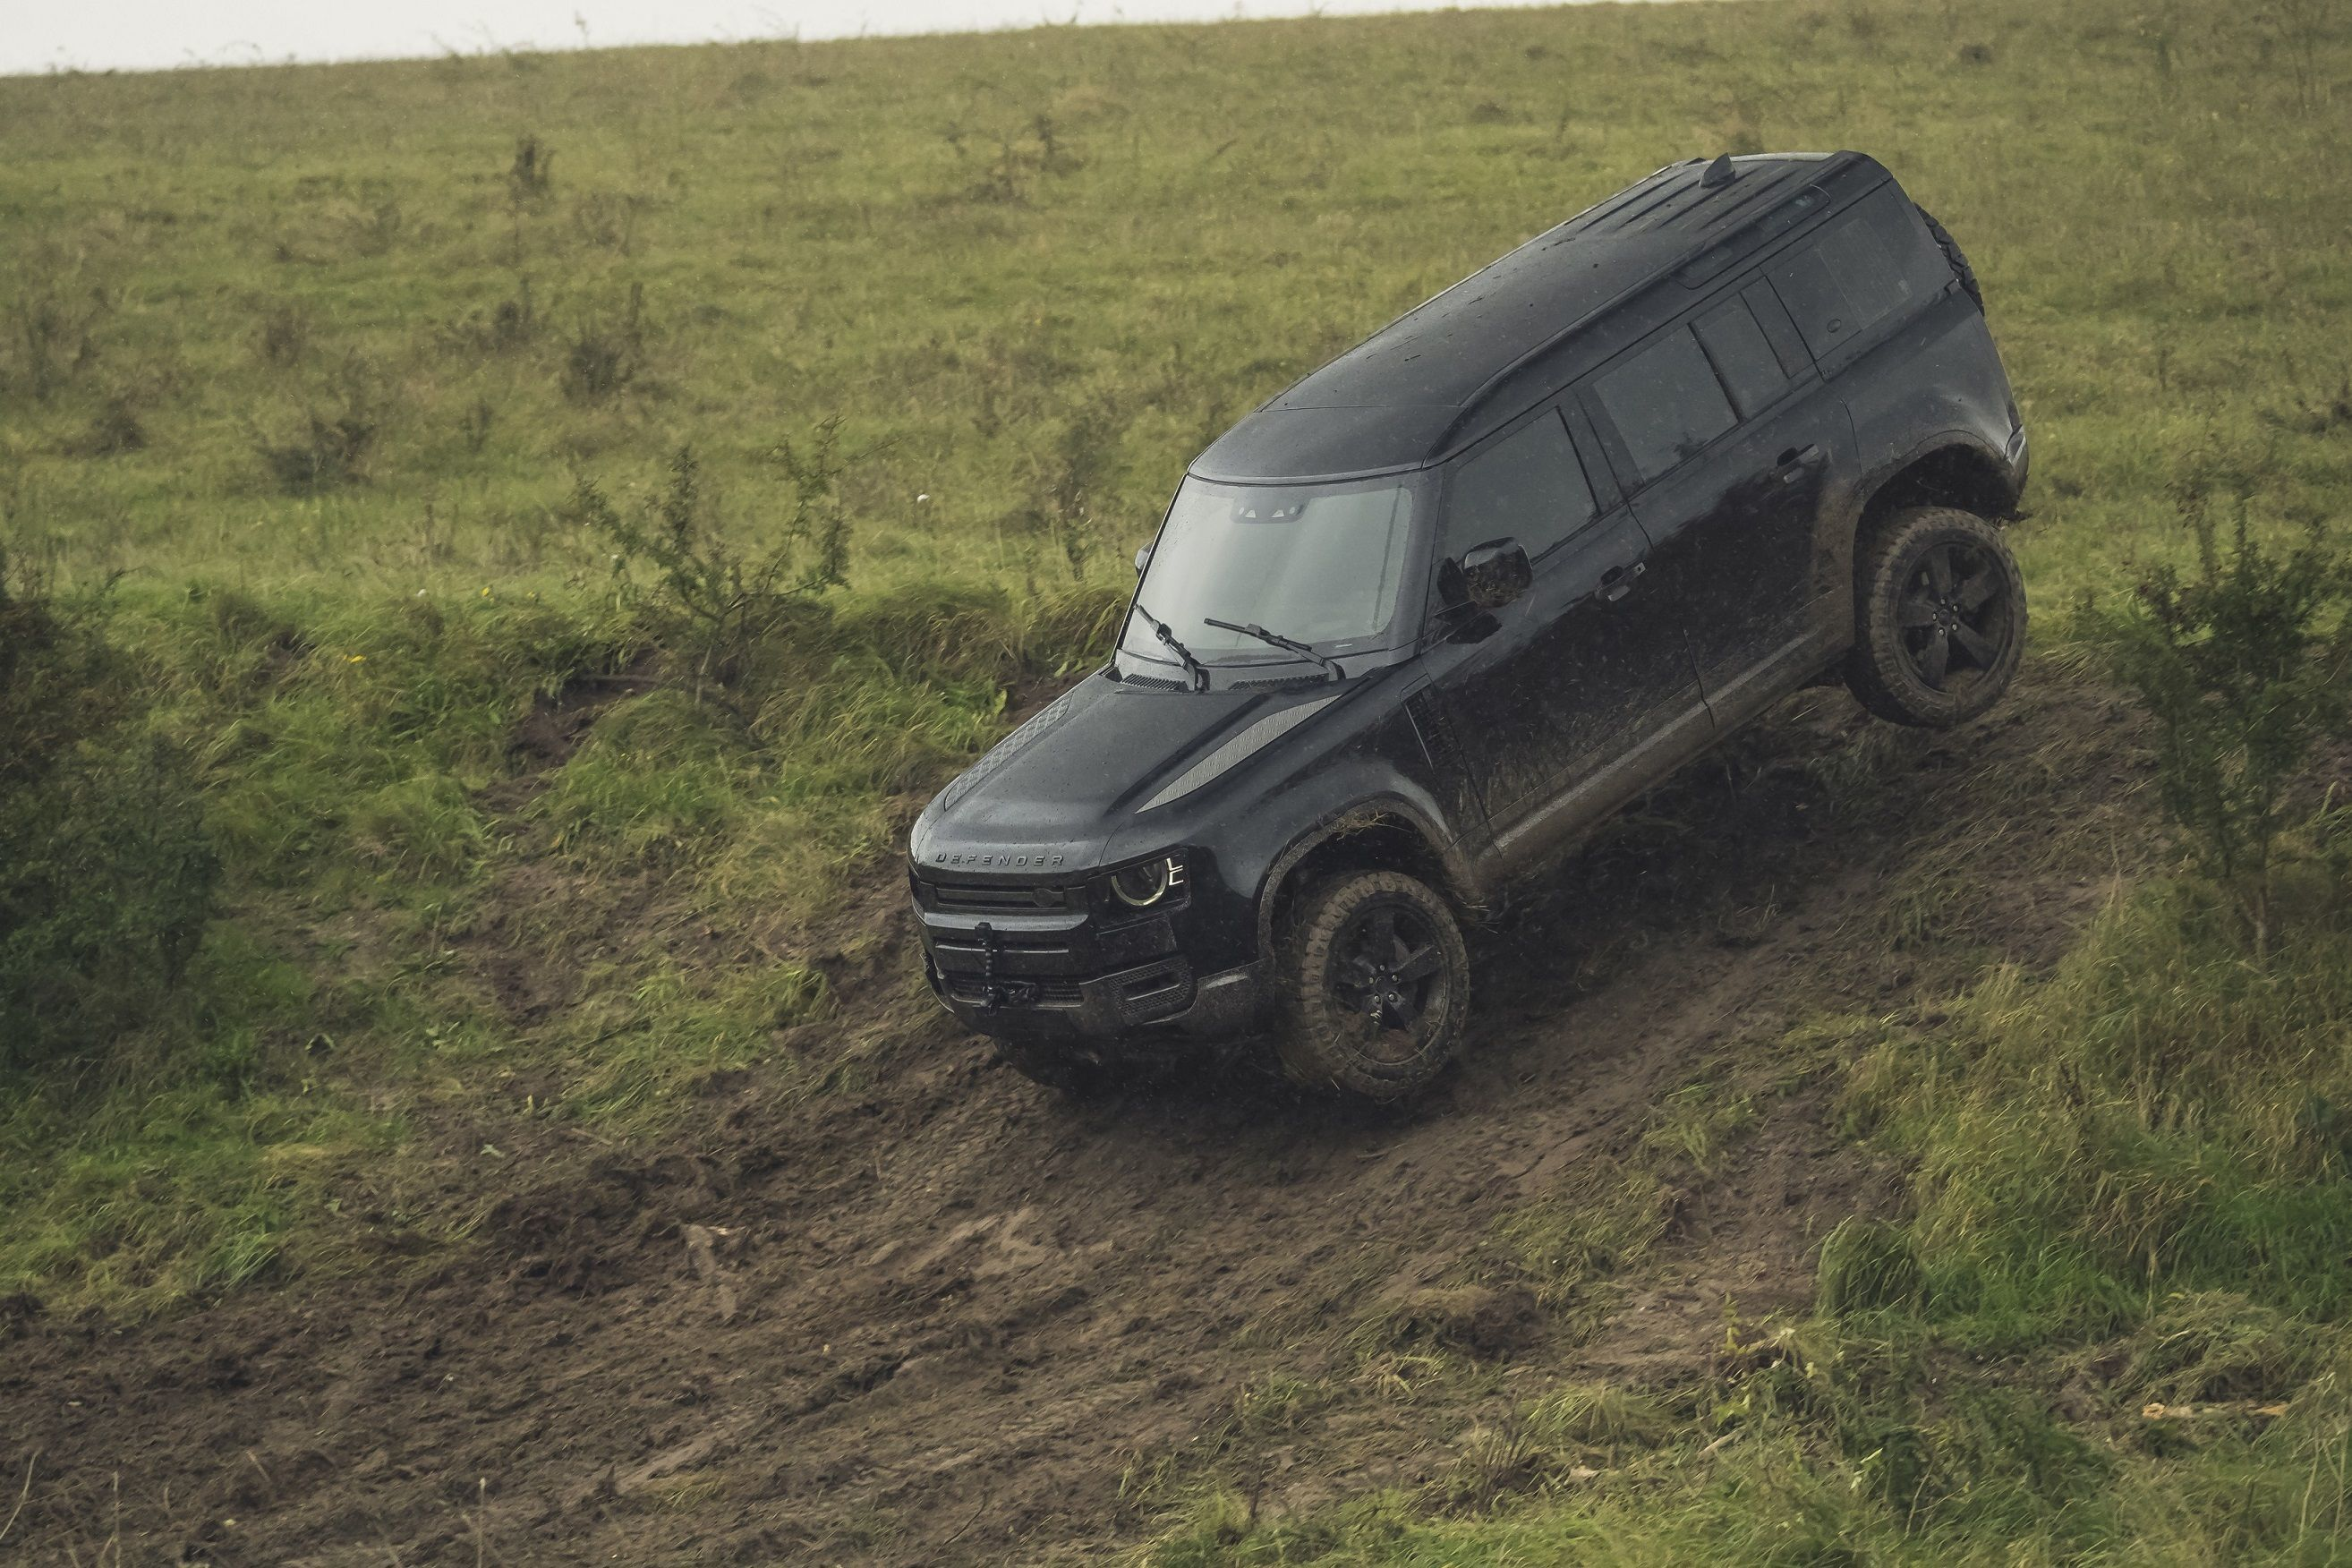 Land Rover is in partnership with EON Productions and recently shared shots from the filming of 'No Time to Die.' Stunt Directors say they were mightily impressed with the machine at hand.